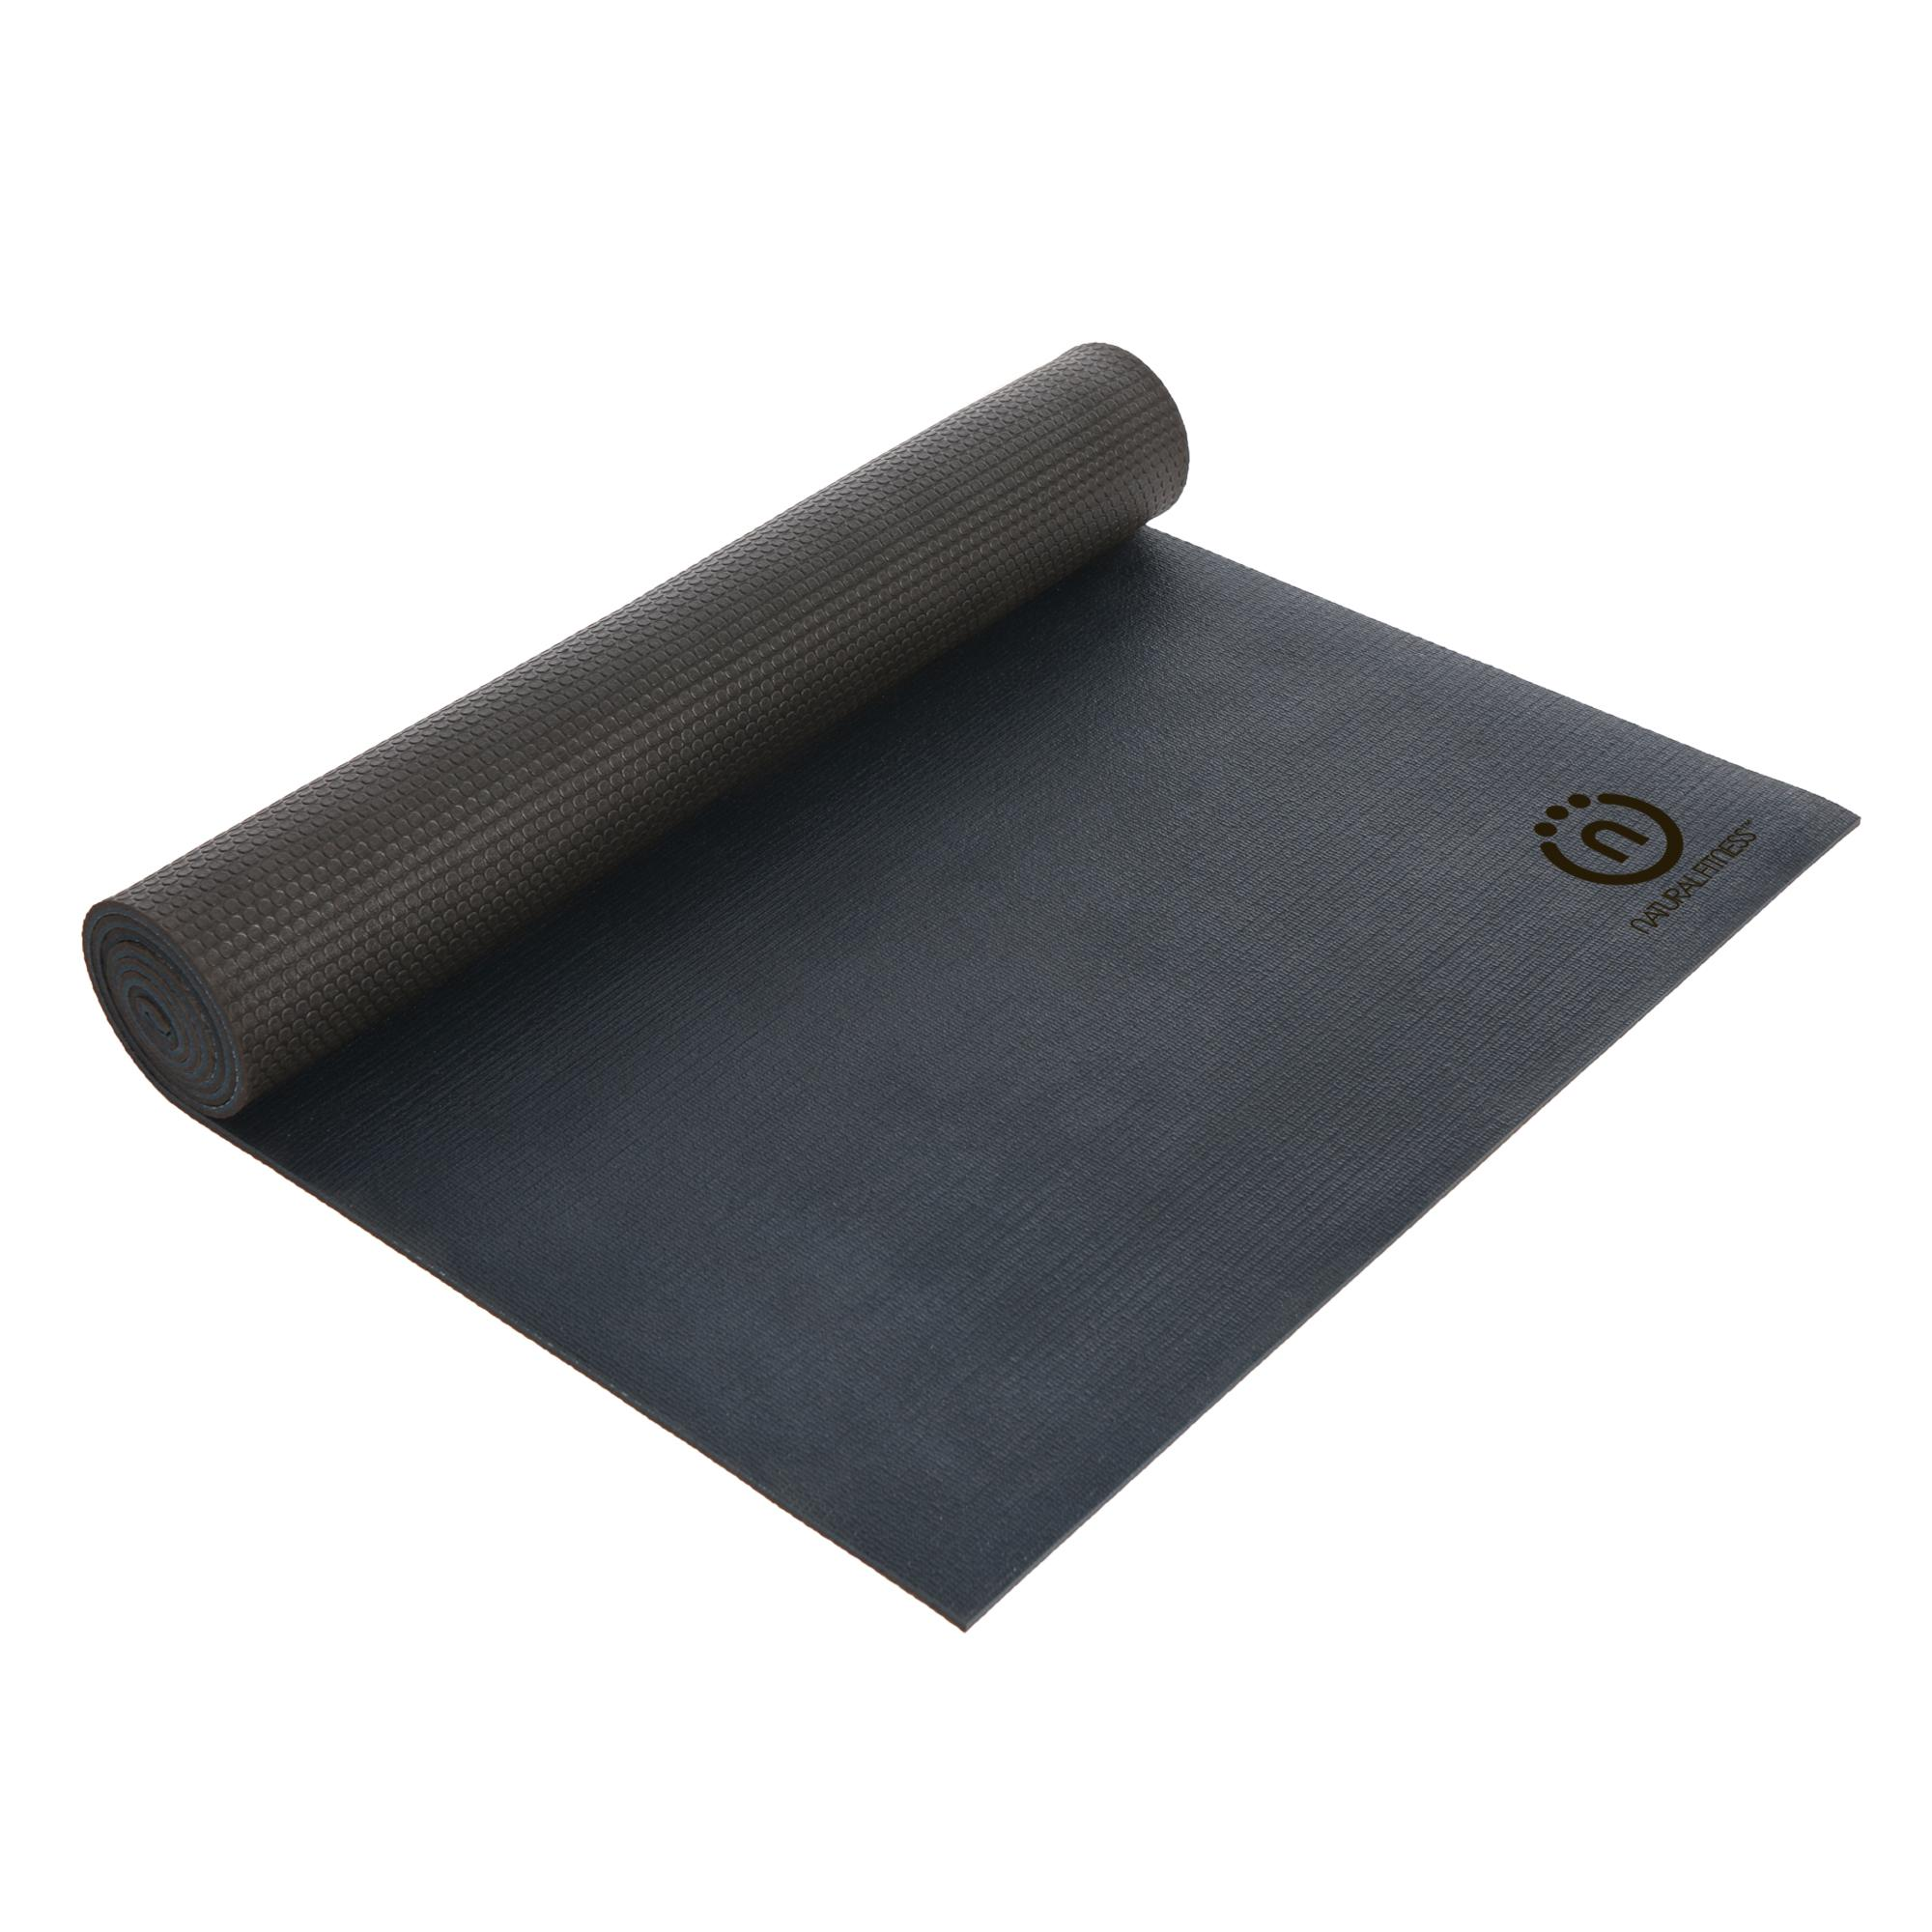 Amazon.com : Natural Fitness Hero Yoga Mat (24 x 72-Inch x